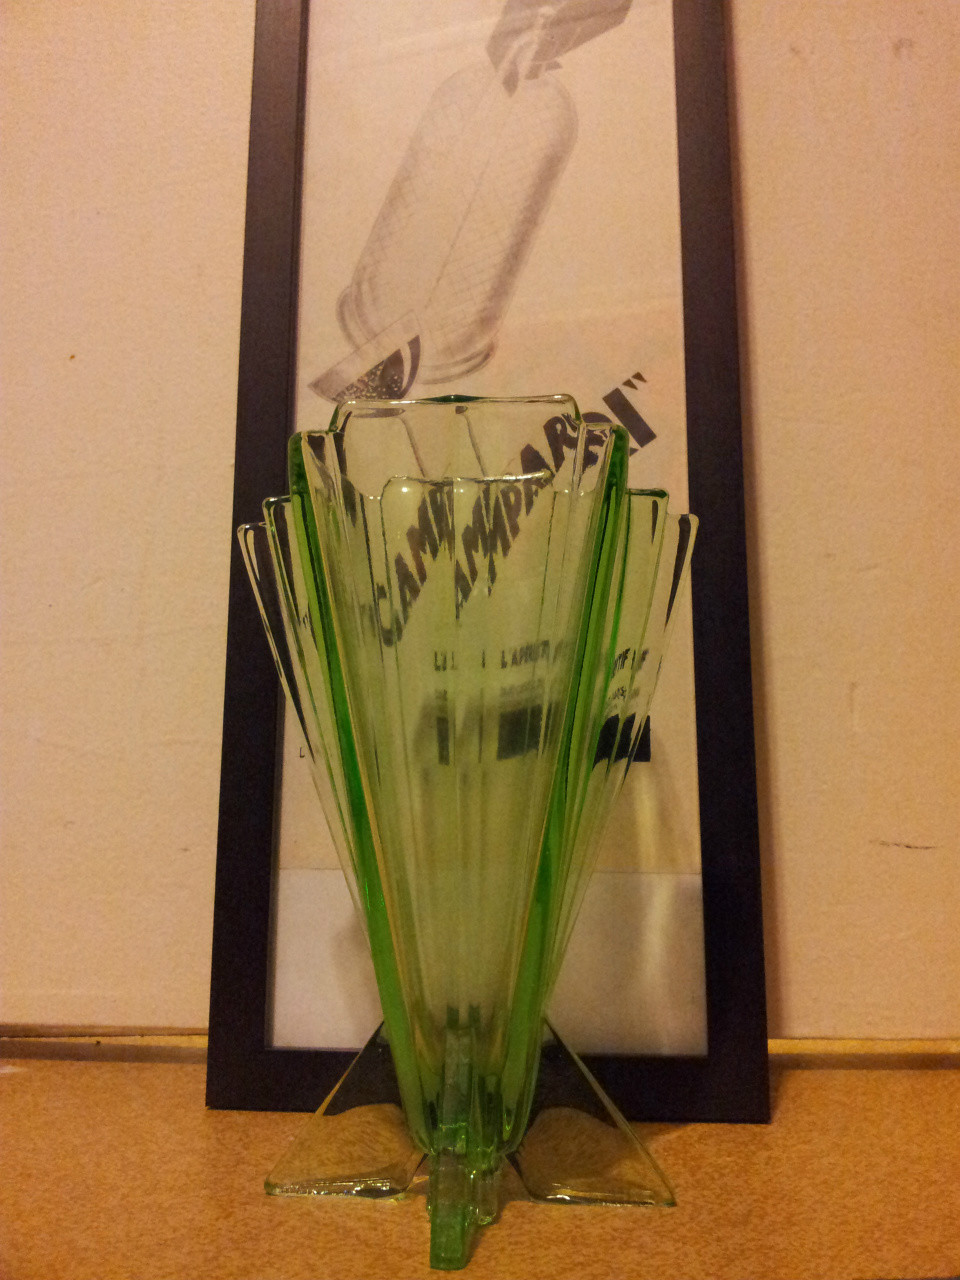 art deco crystal vase of recent acquisitions www art deco metropolis com inside i283163839555355771 szw1280h1280